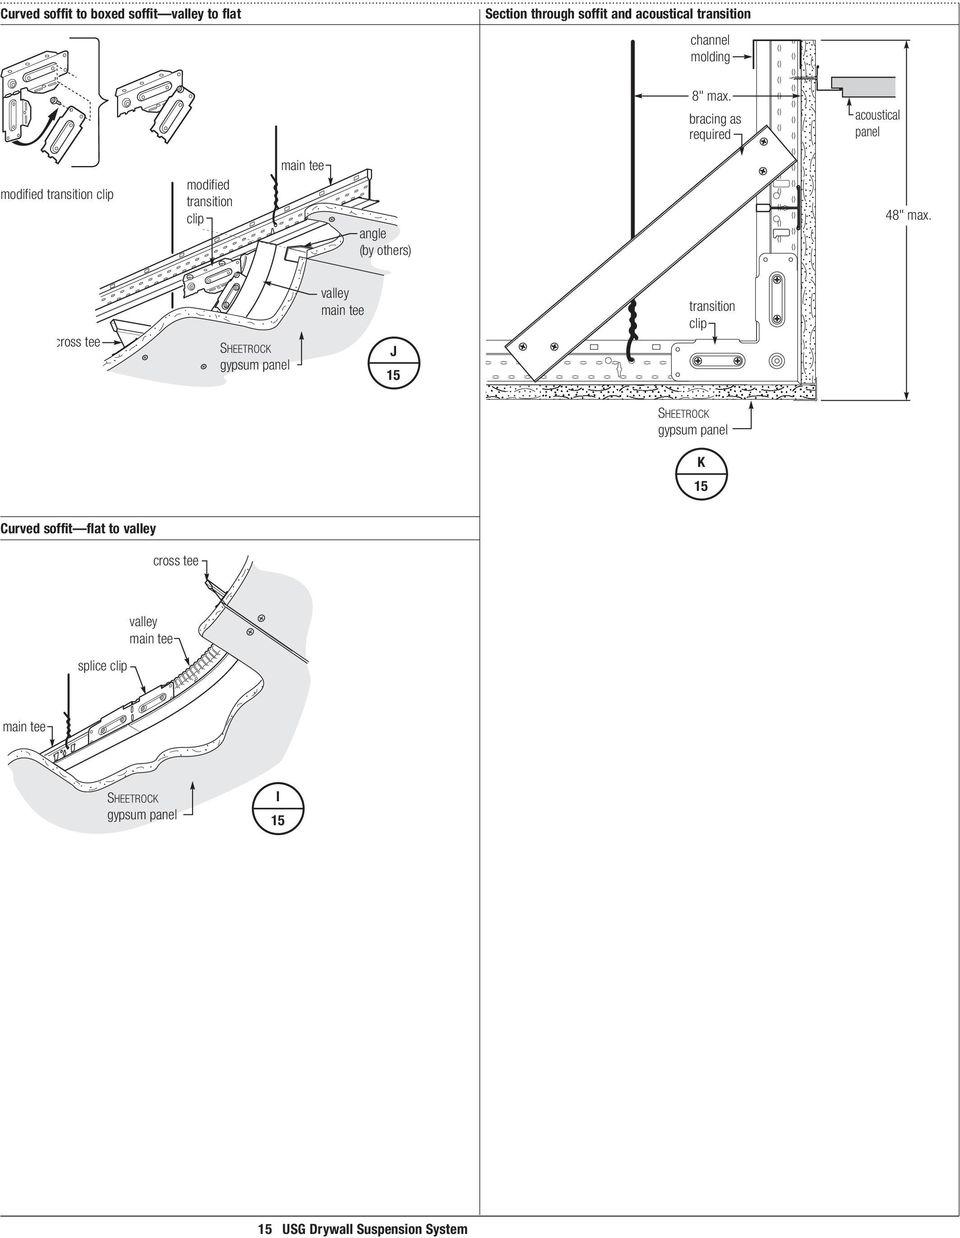 set your design apart drywall suspension system pdf Insert Tab in Access bracing as required acoustical panel modified transition clip modified transition clip